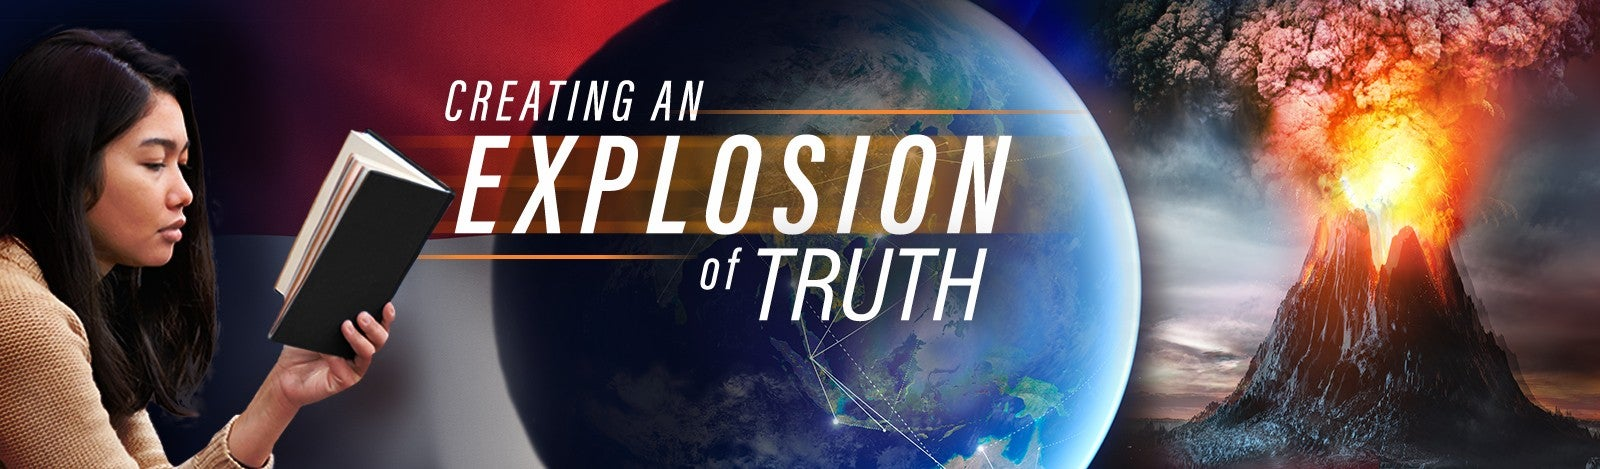 Explosion of Truth